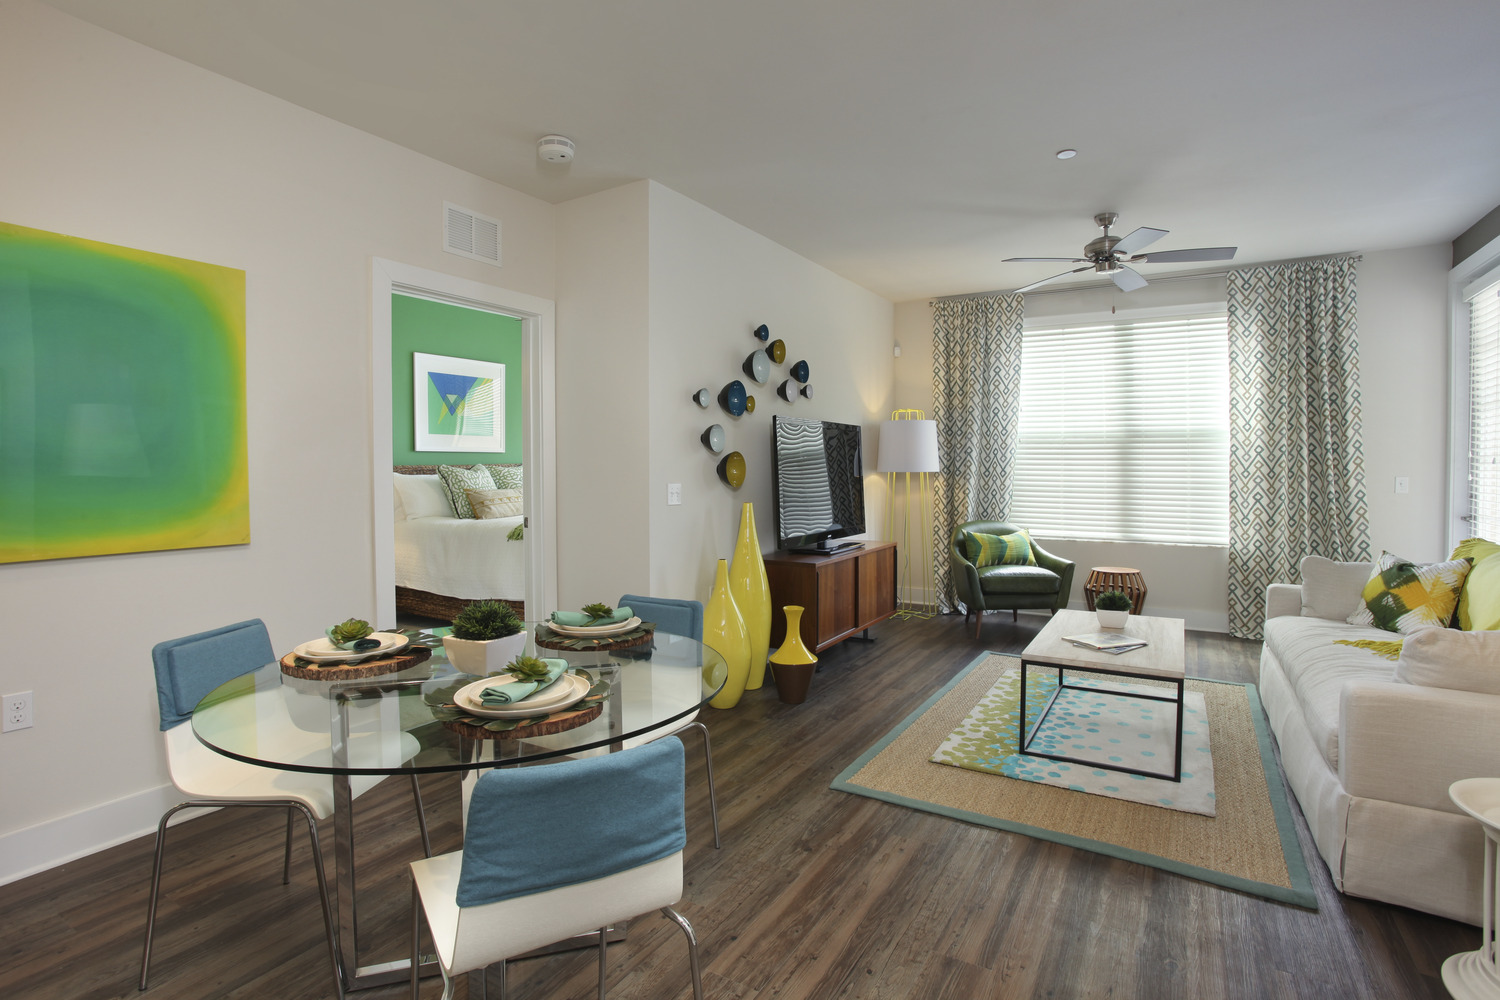 CBG builds Post Soho Square, a 231-Unit Mixed-Use Luxury Apartment Community in Tampa, FL - Image #9